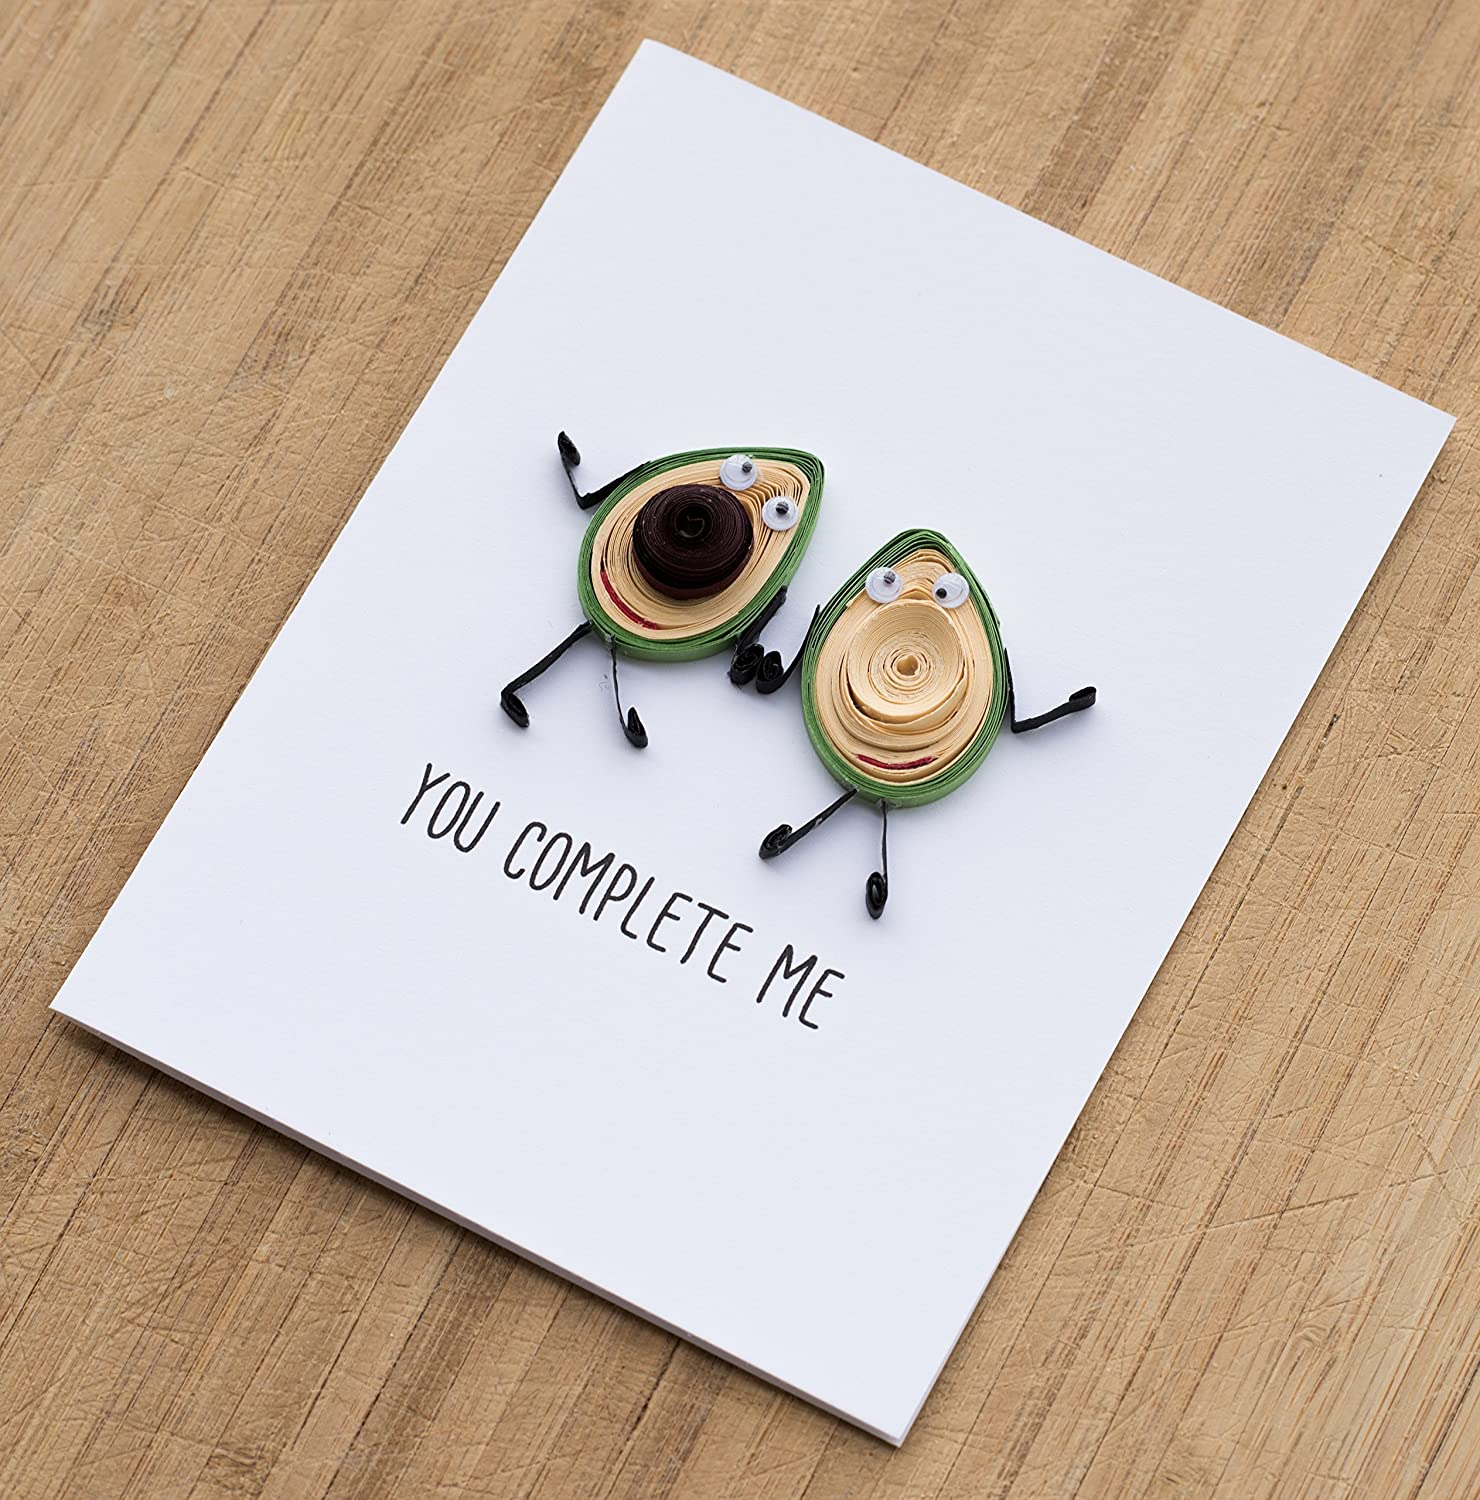 Anniversary Card for your Husband Girlfriend Love Card You Complete Me Boyfriend Wife